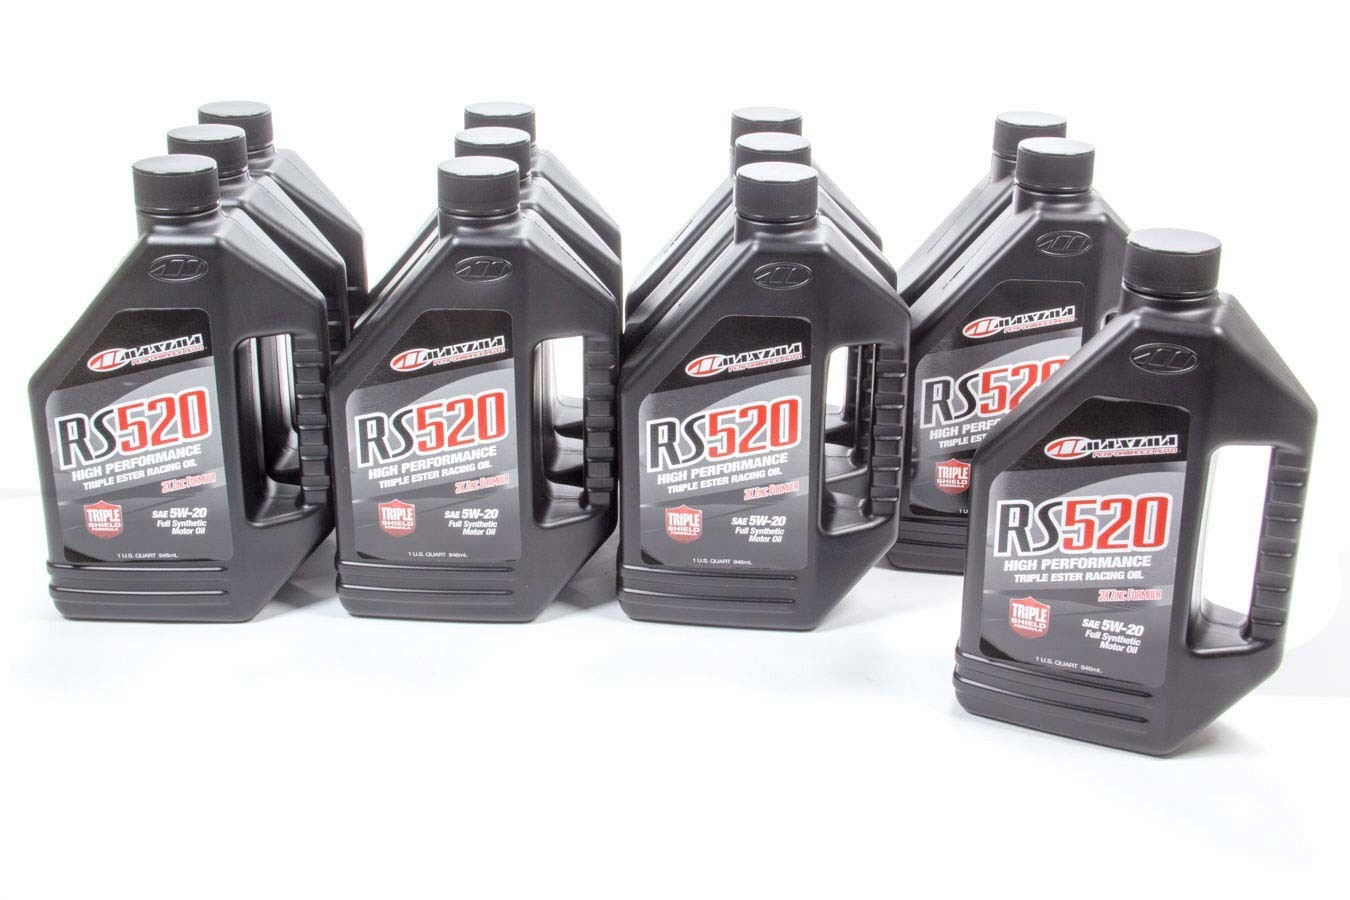 Maxima Racing Oils 39-04901 Motor Oil, RS520, 5W20, Synthetic, 1 qt Bottle, Set of 12